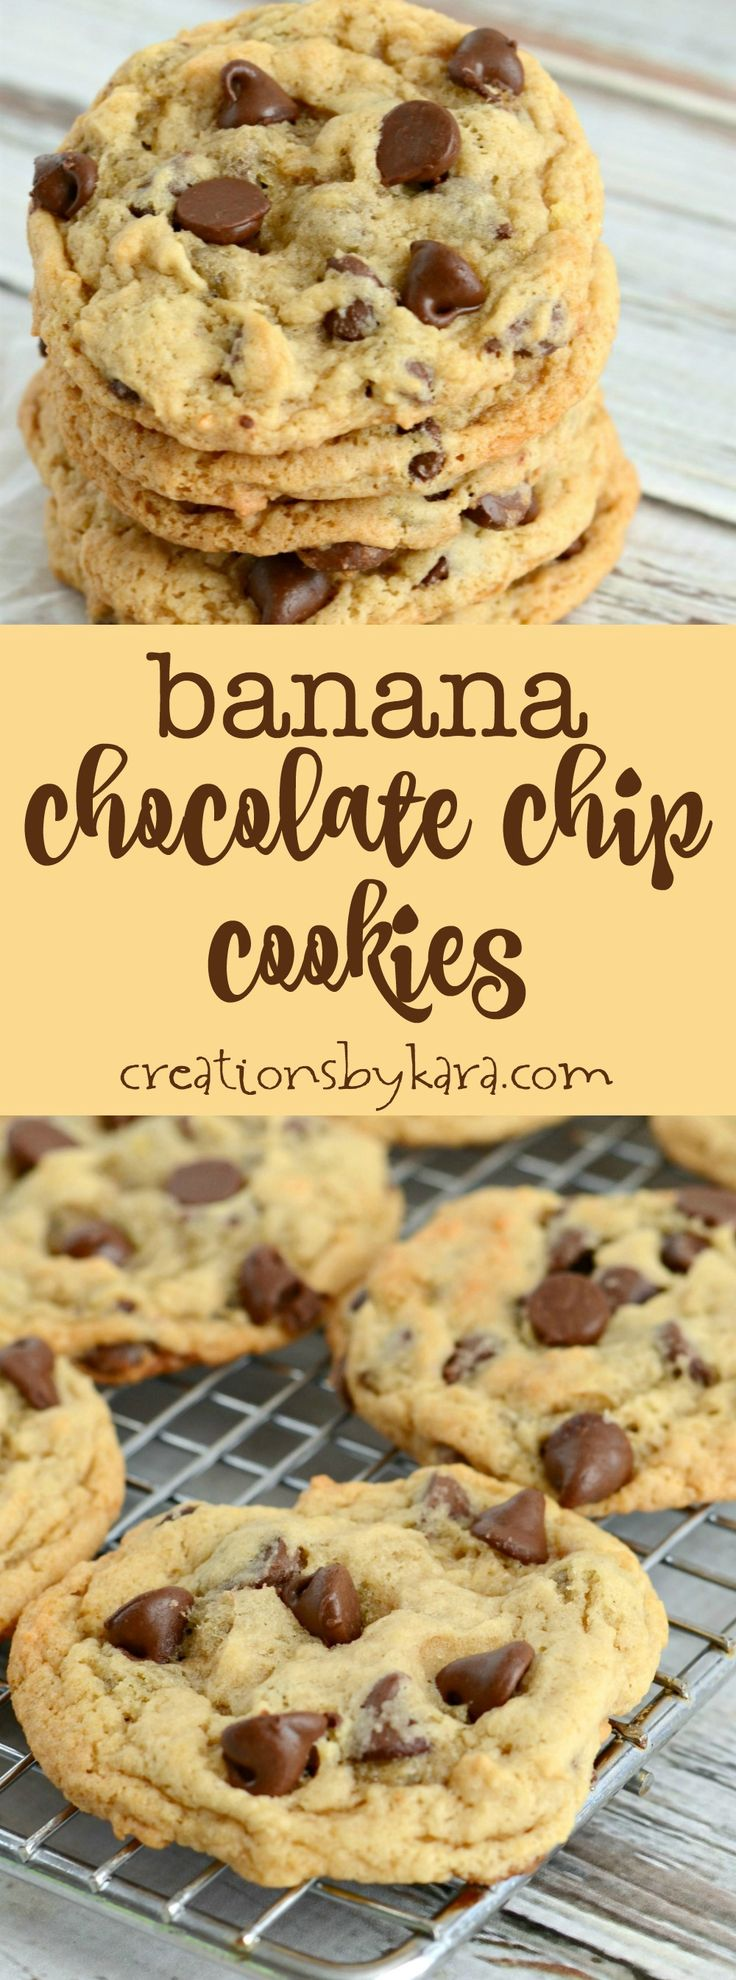 Recipe for the best chewy banana chocolate chip cookies. They are egg-free, and so yummy! Everyone loved these banana cookies! via creationsbykara.com: